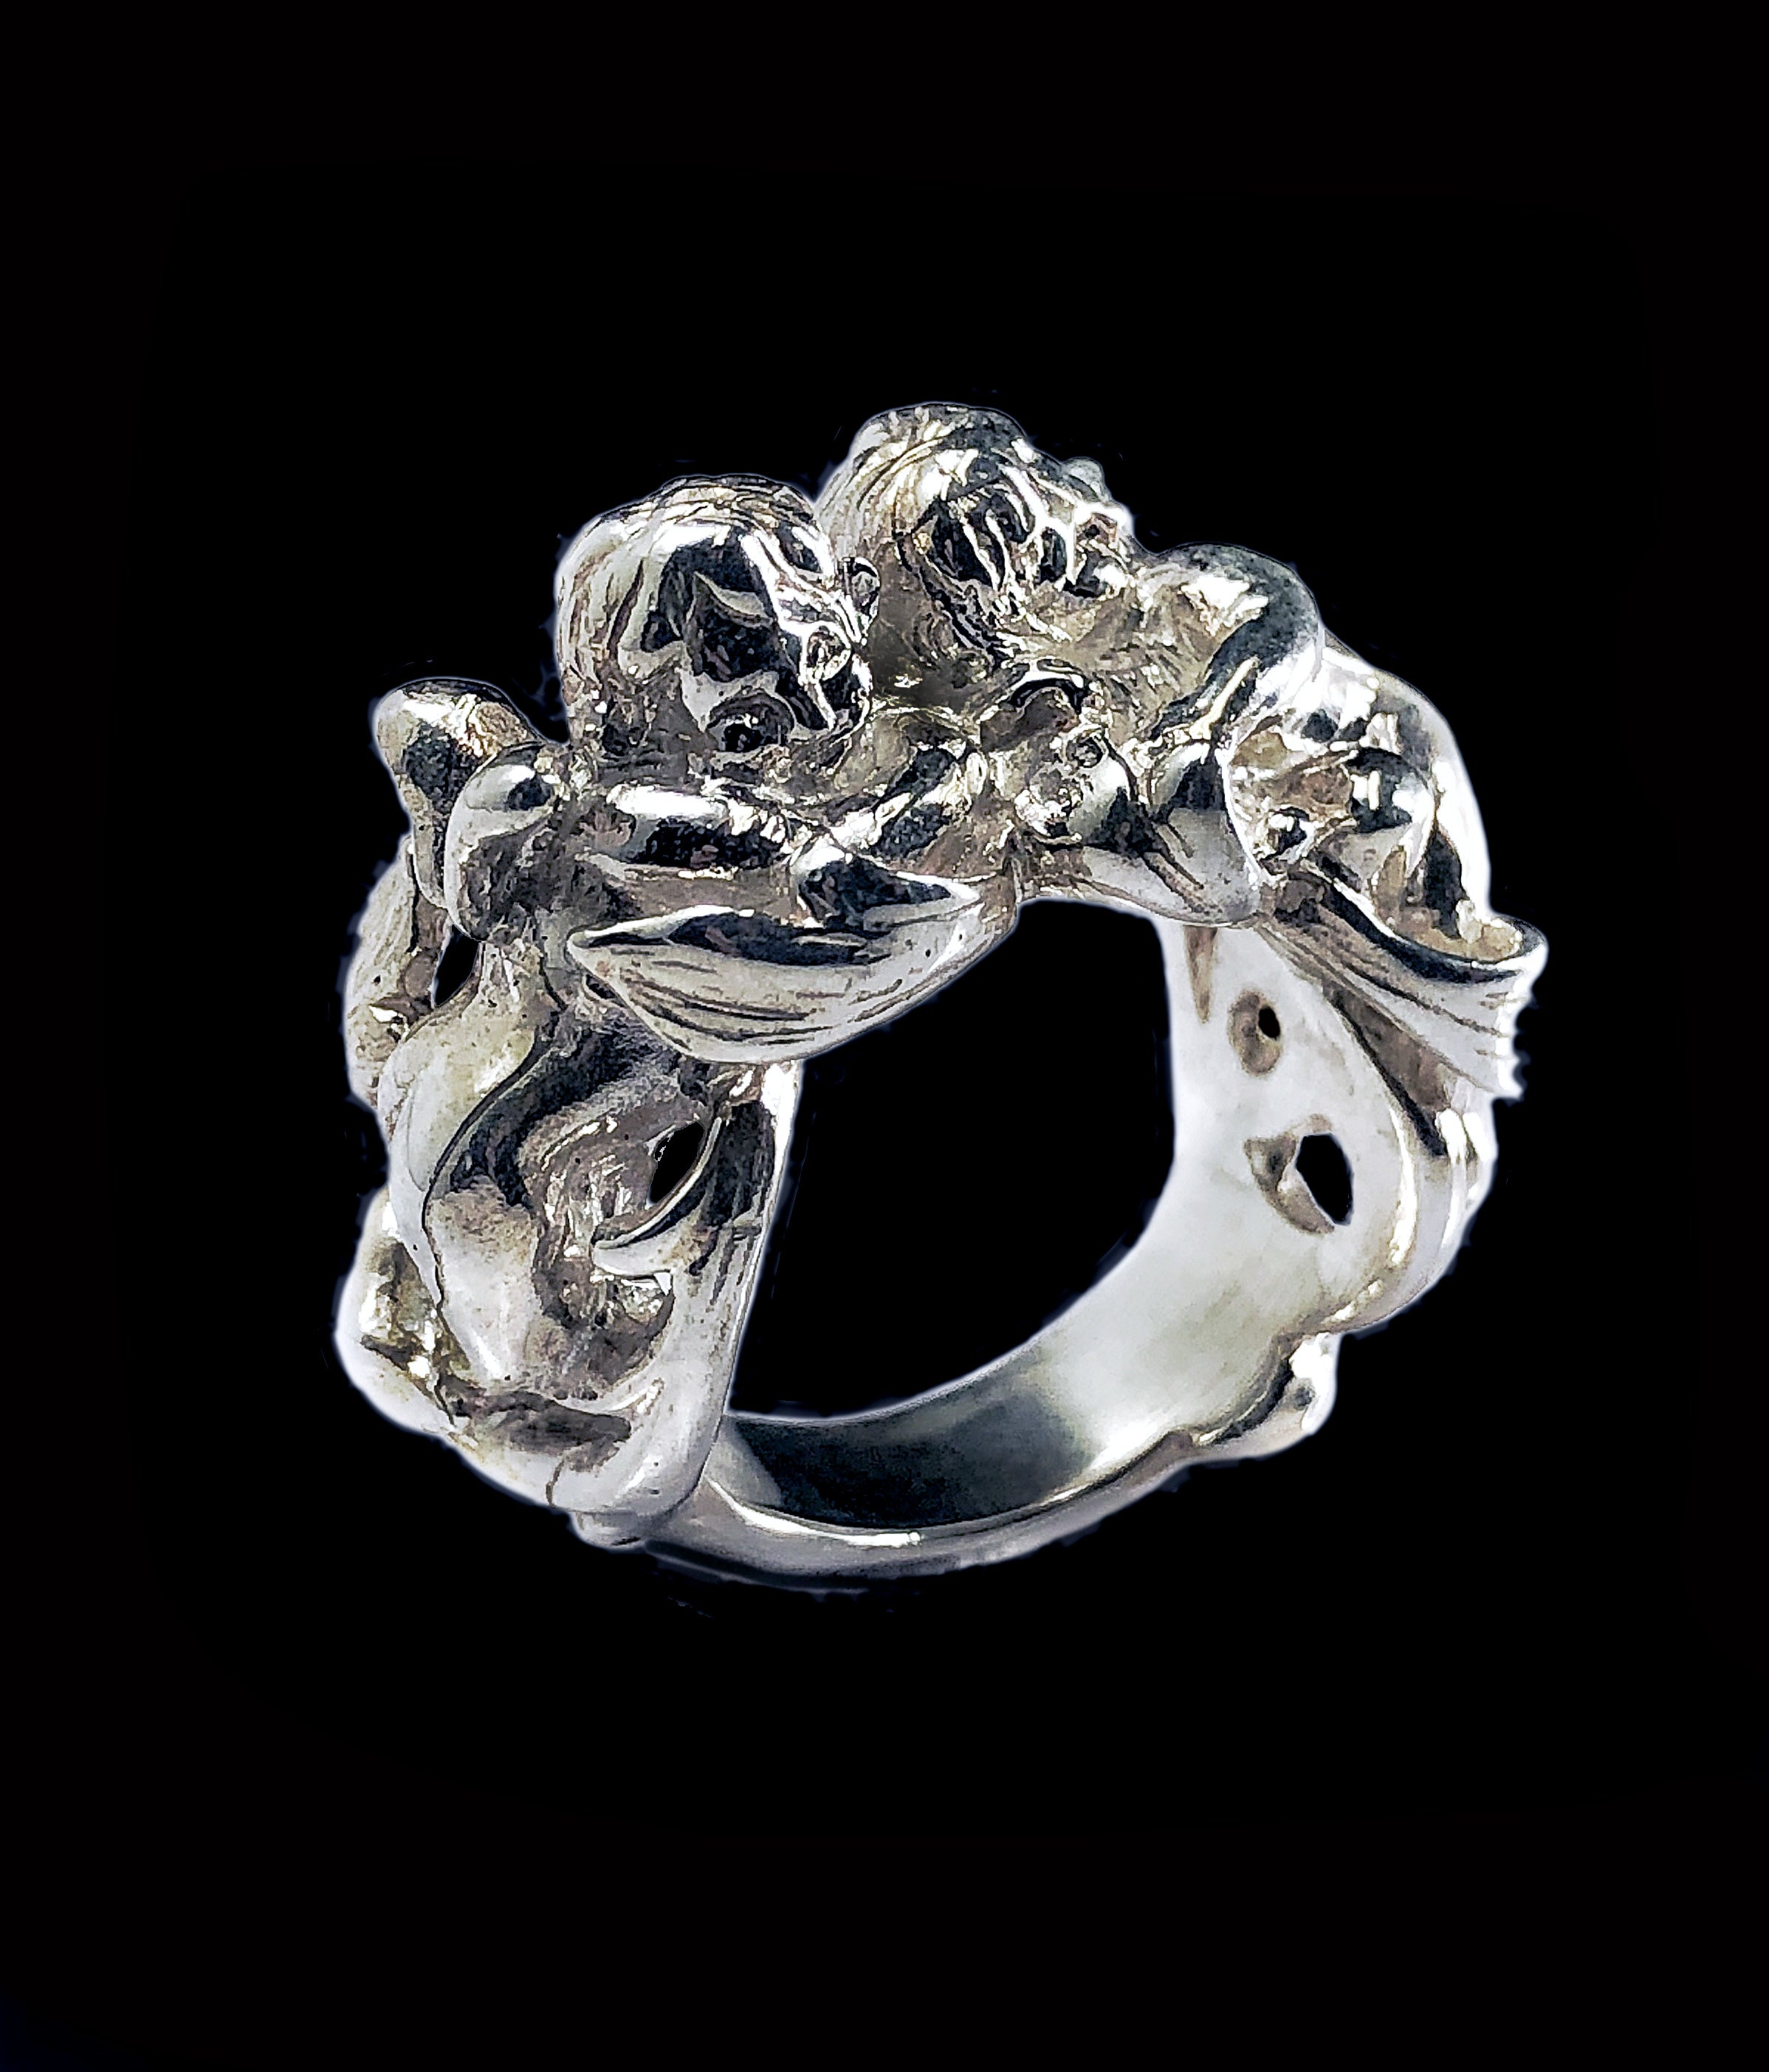 Cherub Ring - Terry Schiefer